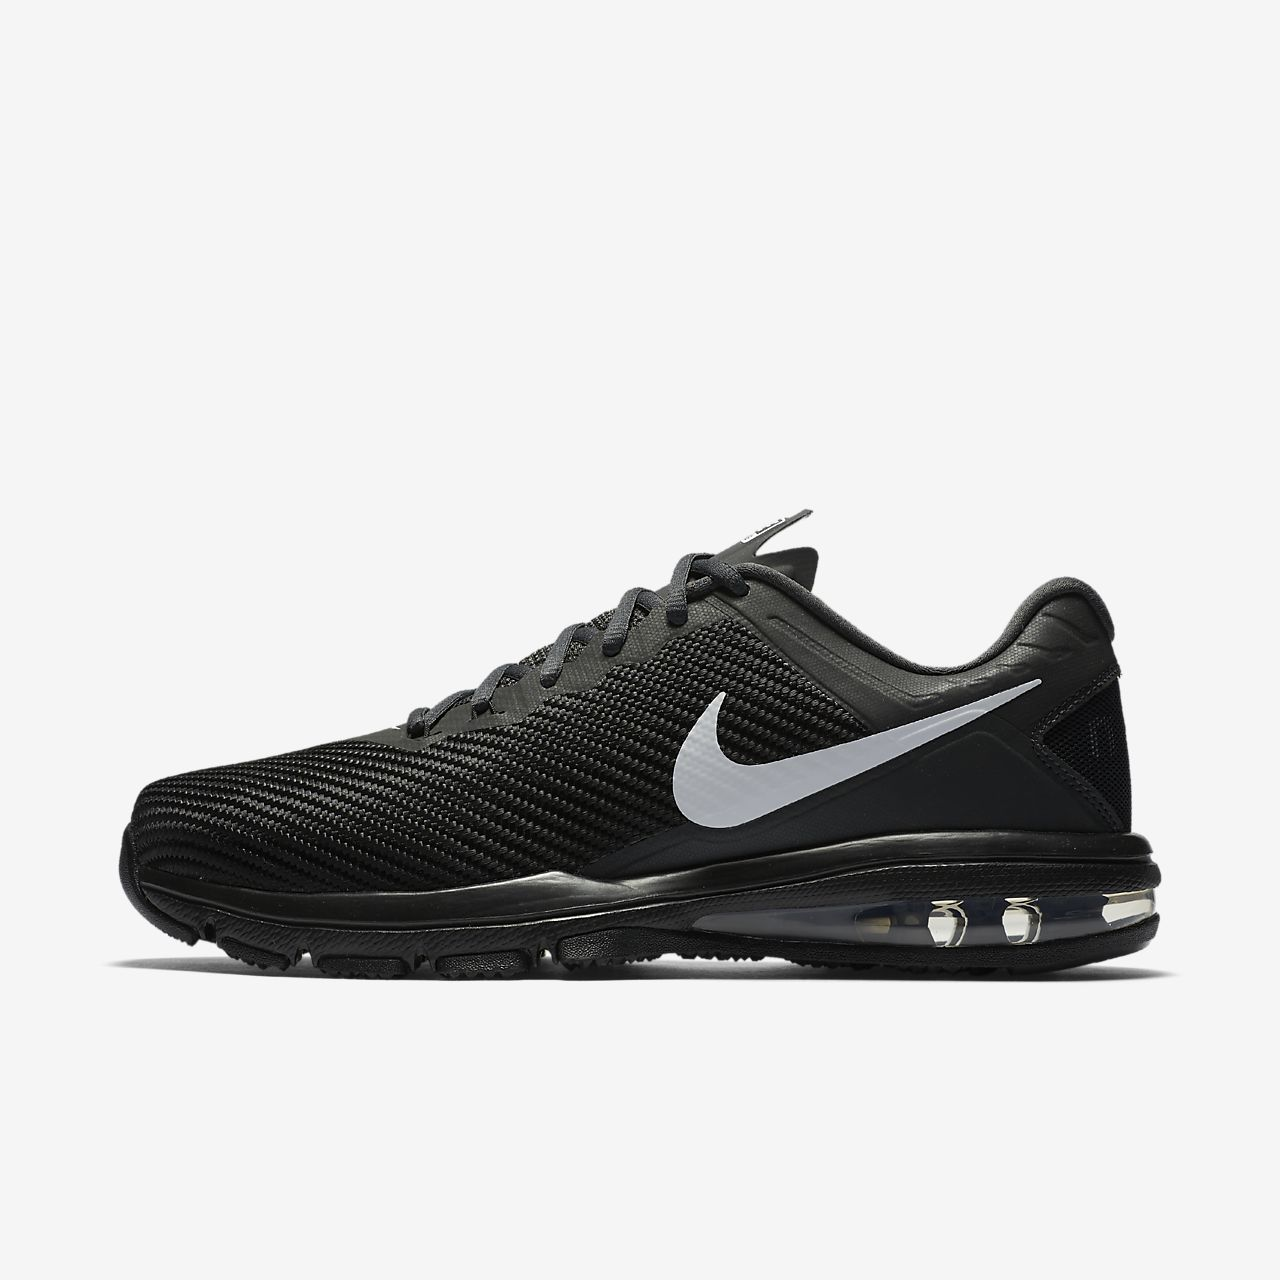 on sale 8d0fa f3e02 ... Chaussure de training Nike Air Max Full Ride TR 1.5 pour Homme